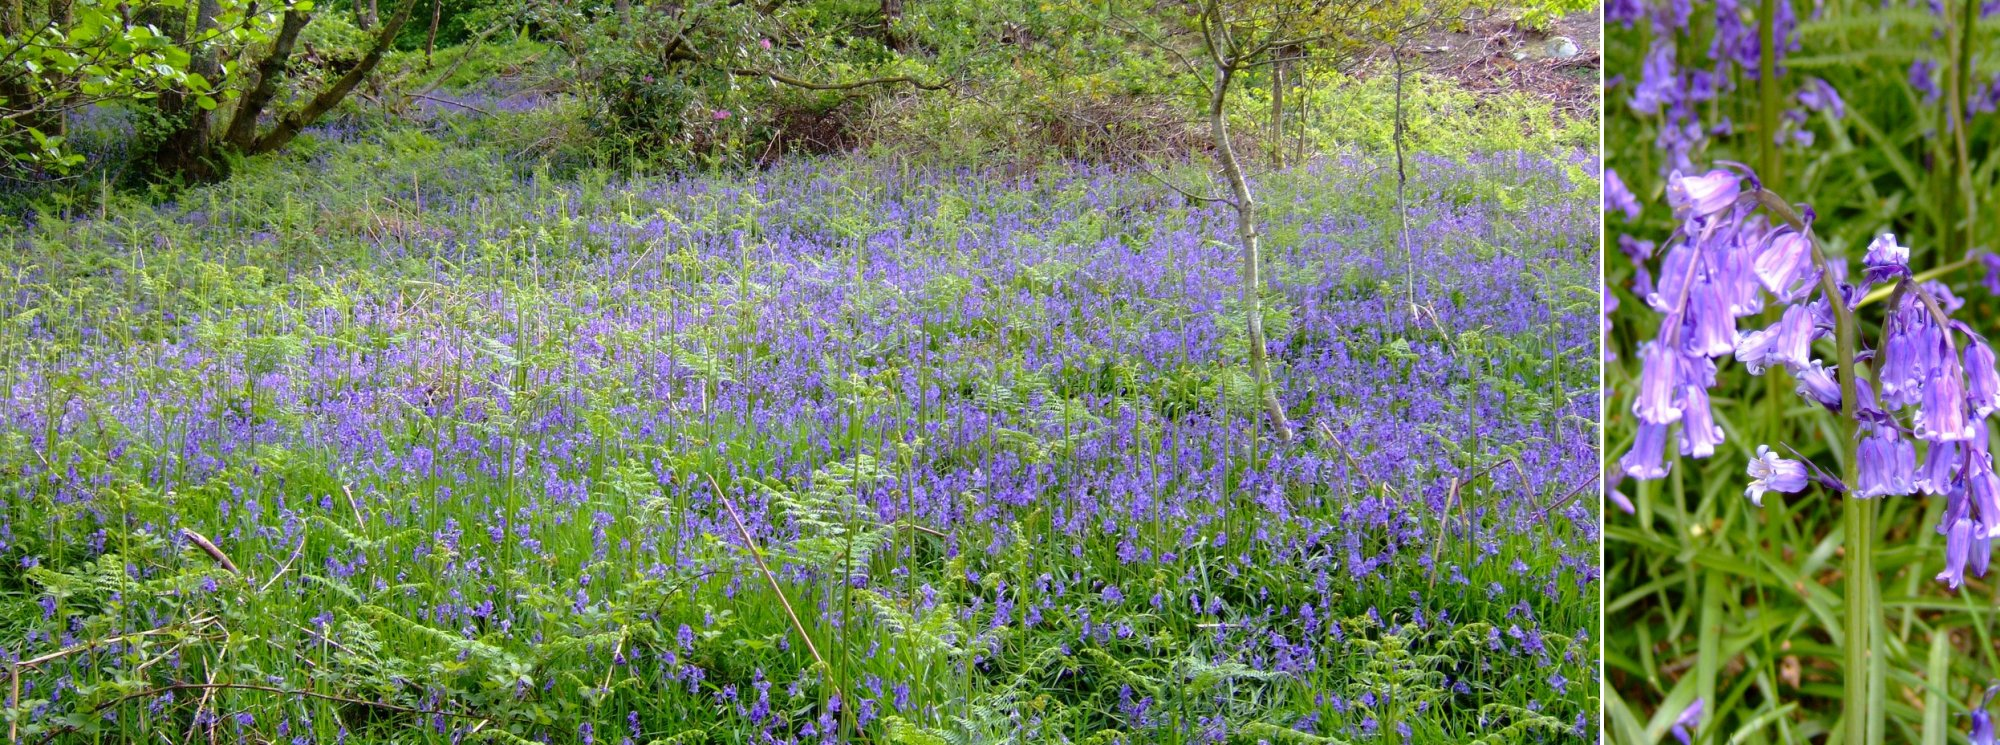 Bluebells everywhere; more Bluebells than litter in fact and that's saying something.